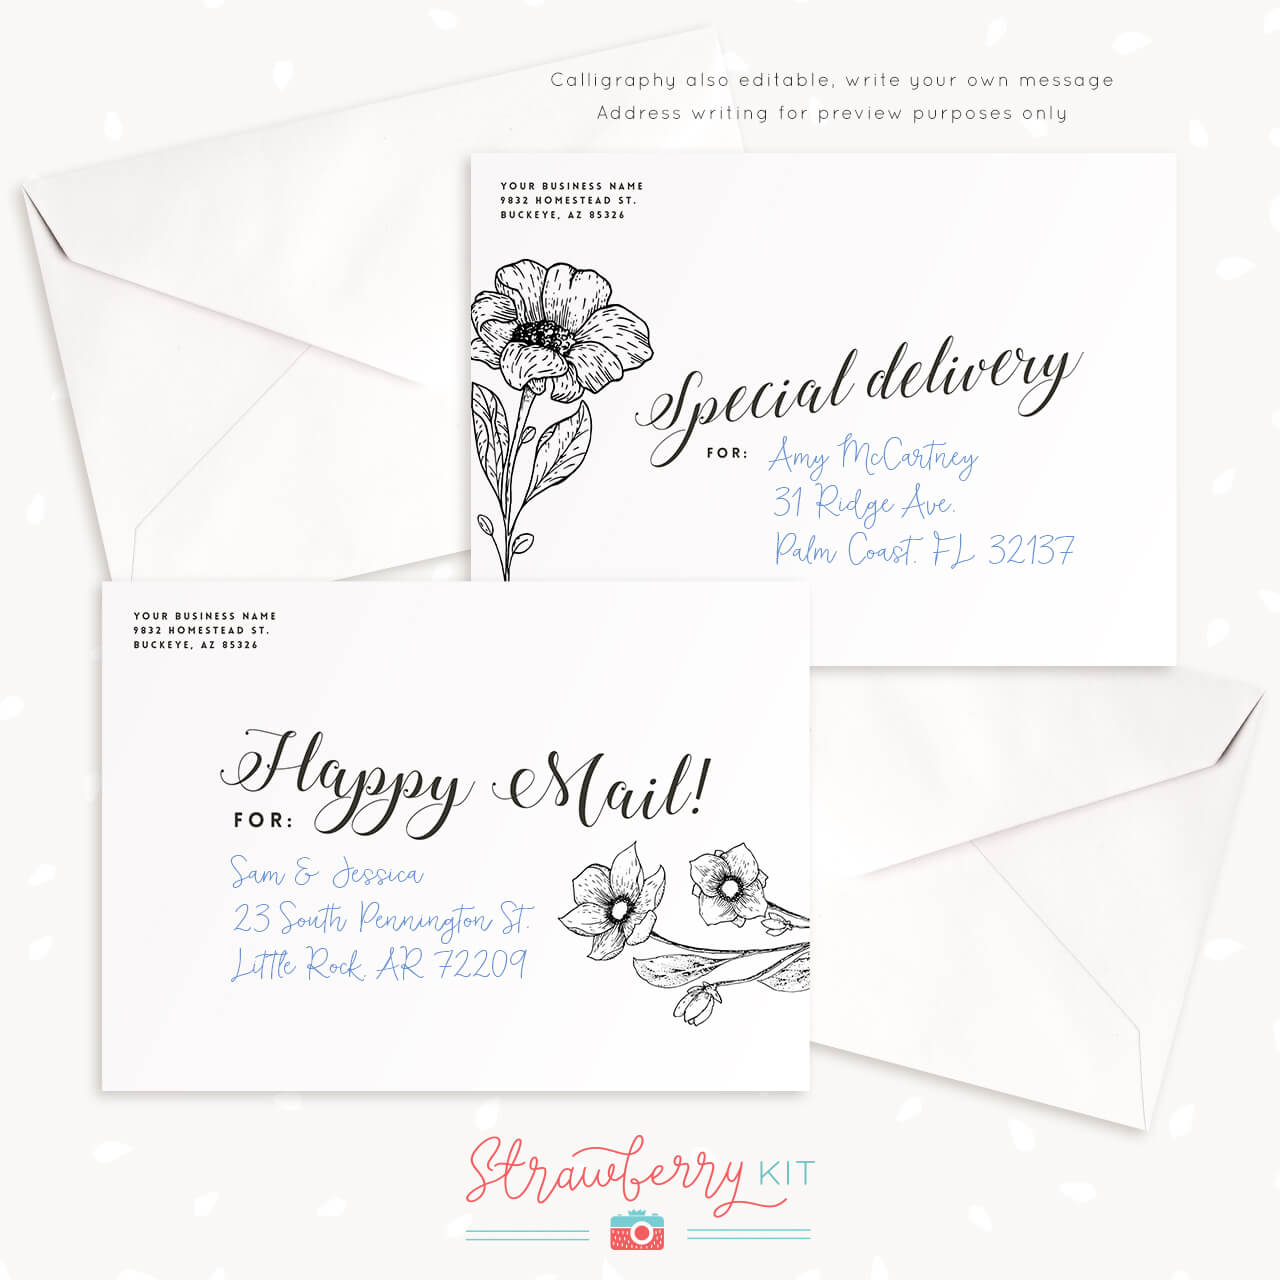 Printable Envelope Template Floral Calligraphy Strawberry Kit